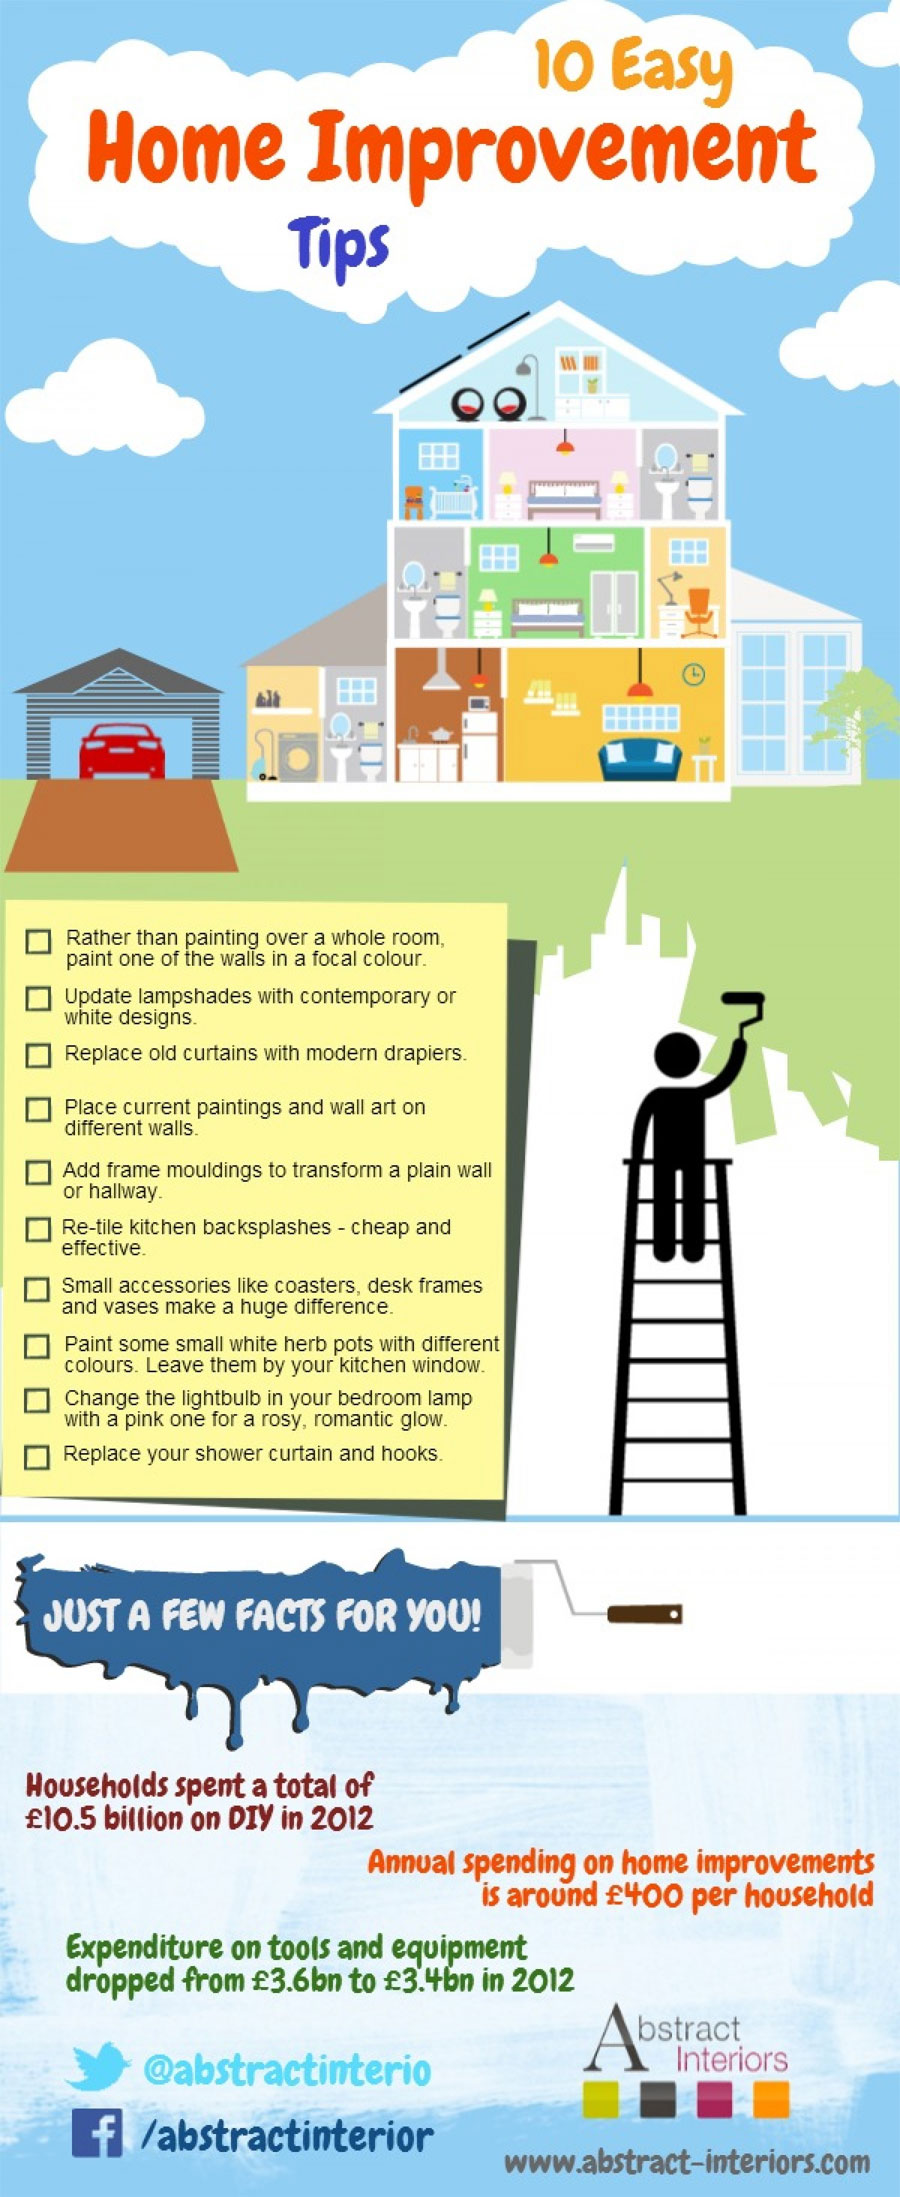 info2 - Home Improvement – These are the 4 main benefits of DIY